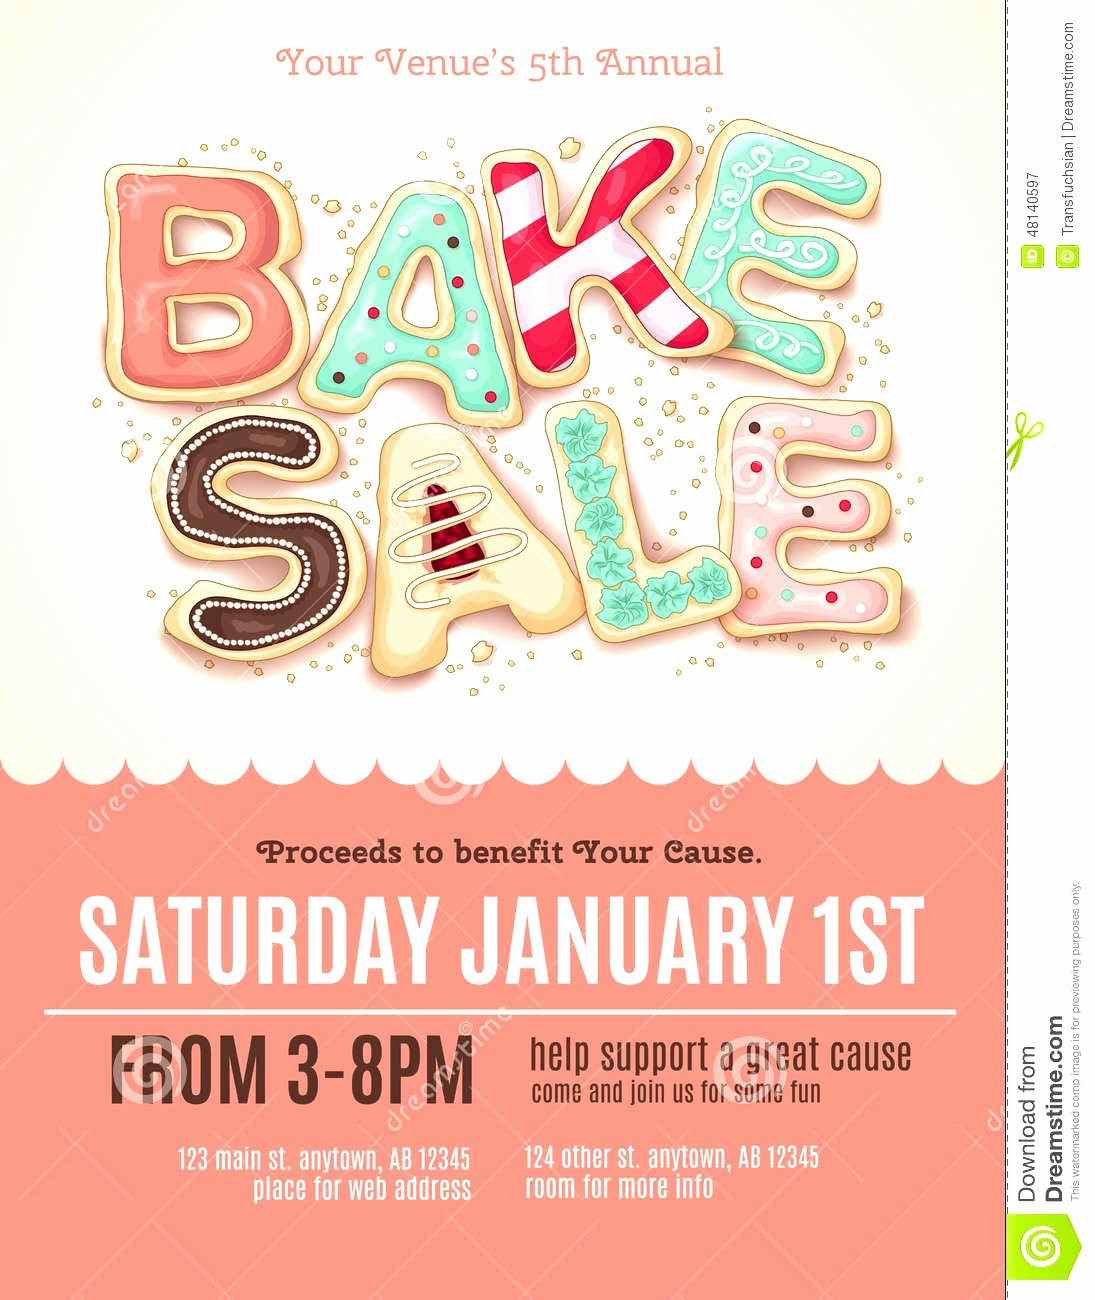 Bake Sale Flyer Template Microsoft Elegant Microsoft Word Flyer Template Free Brochure for Design